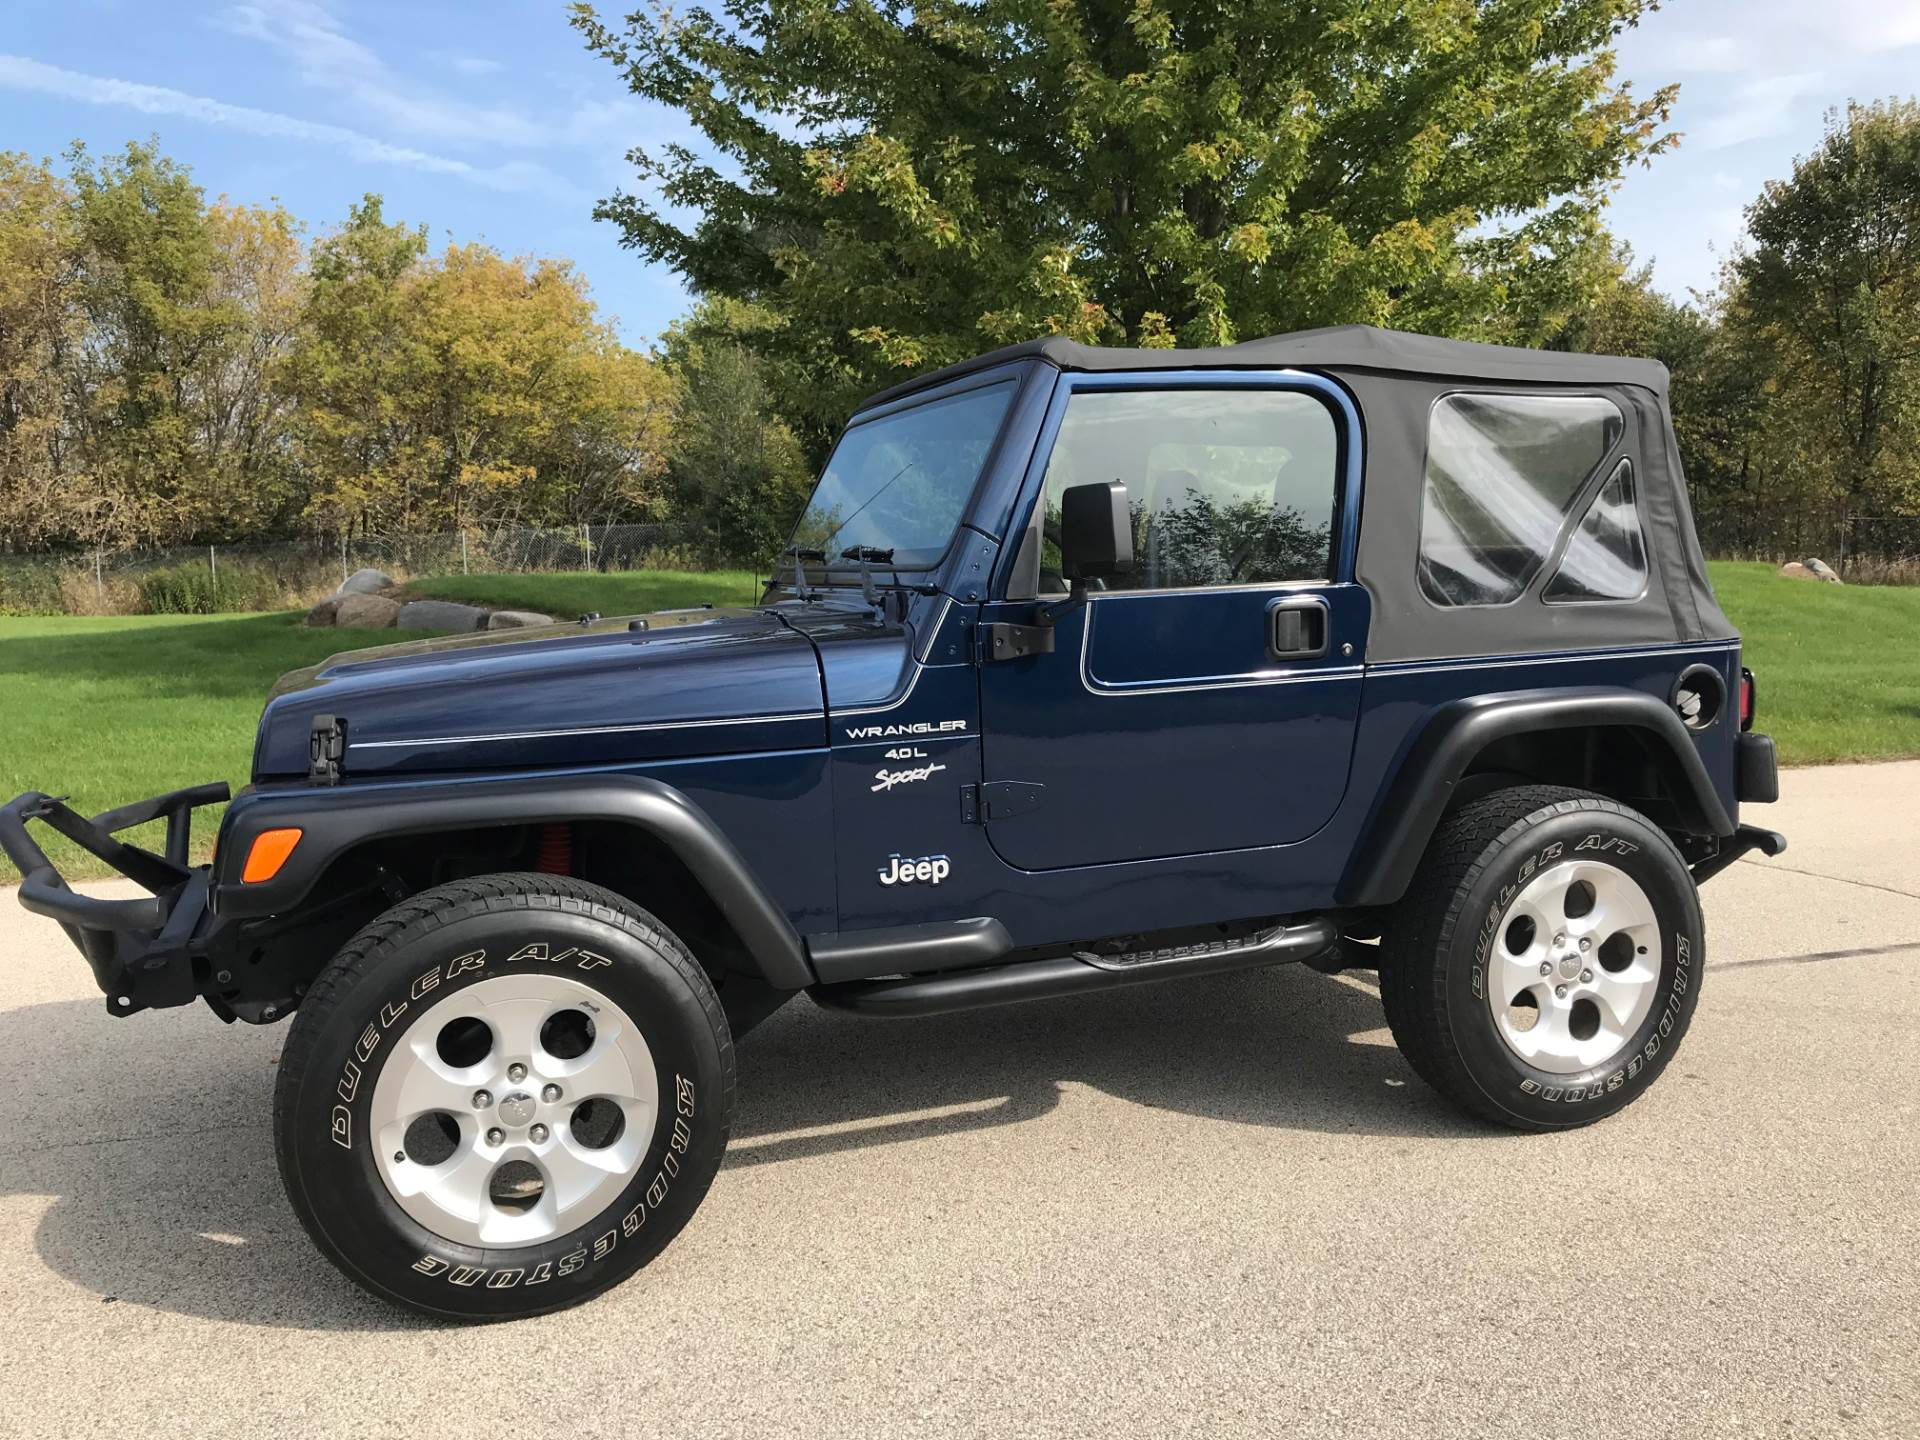 2000 Jeep Wrangler Sport 2dr 4WD SUV in Big Bend, Wisconsin - Photo 20